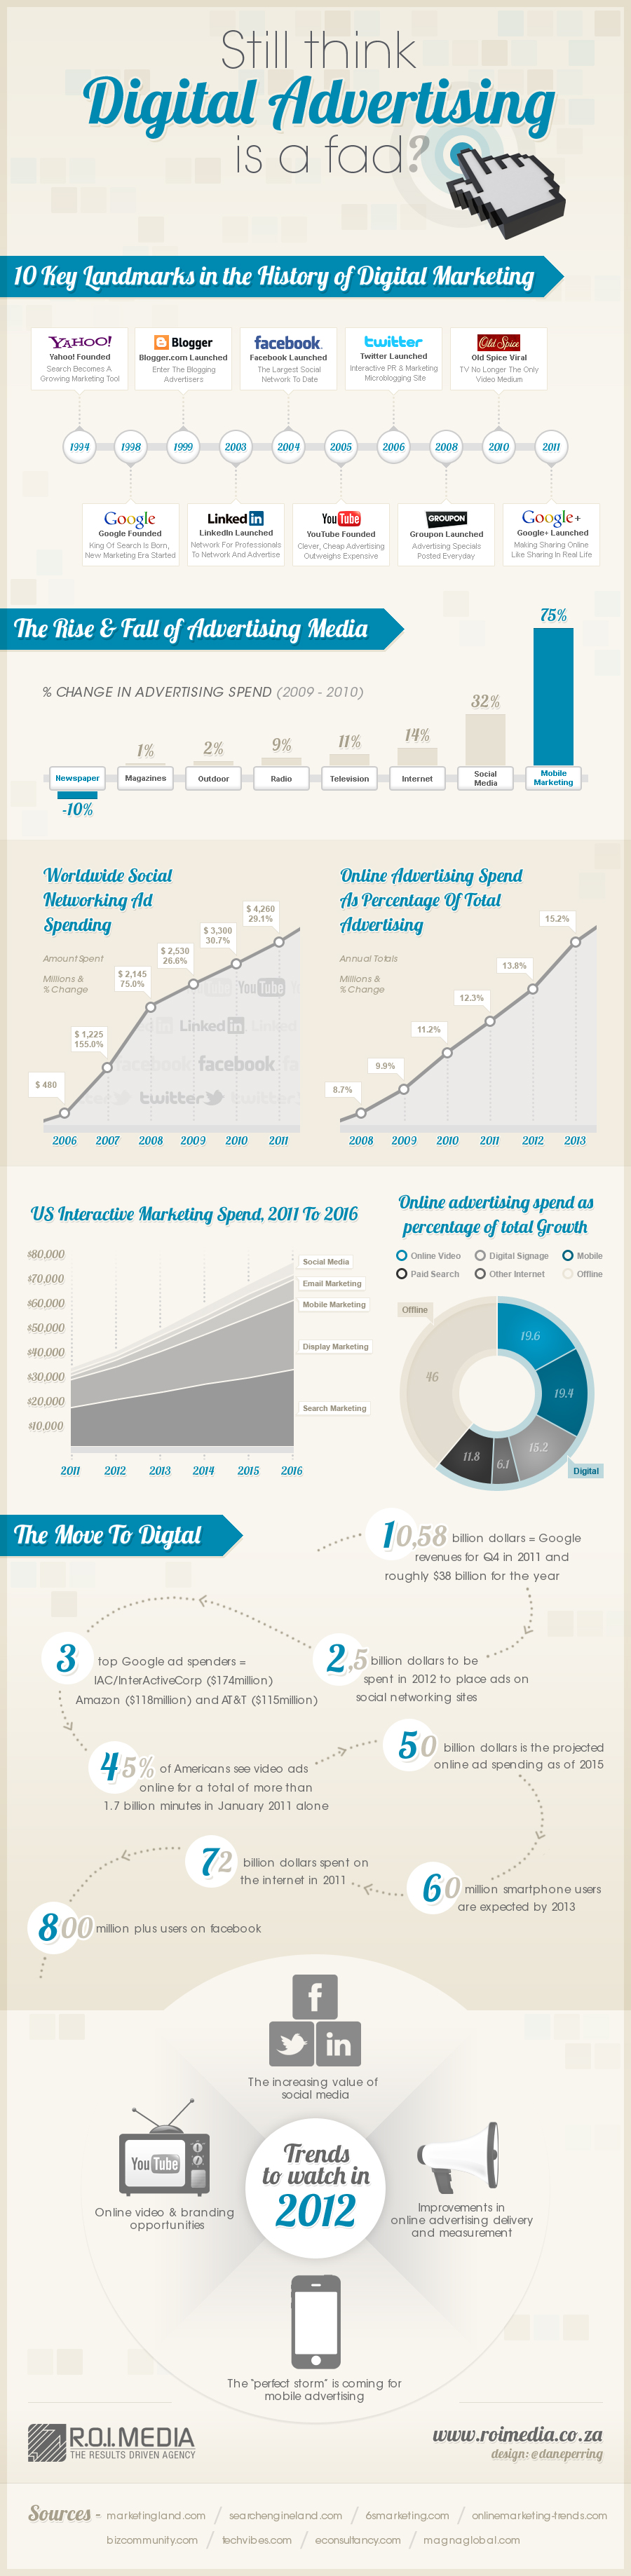 Still think Digital Advertising is a fad.